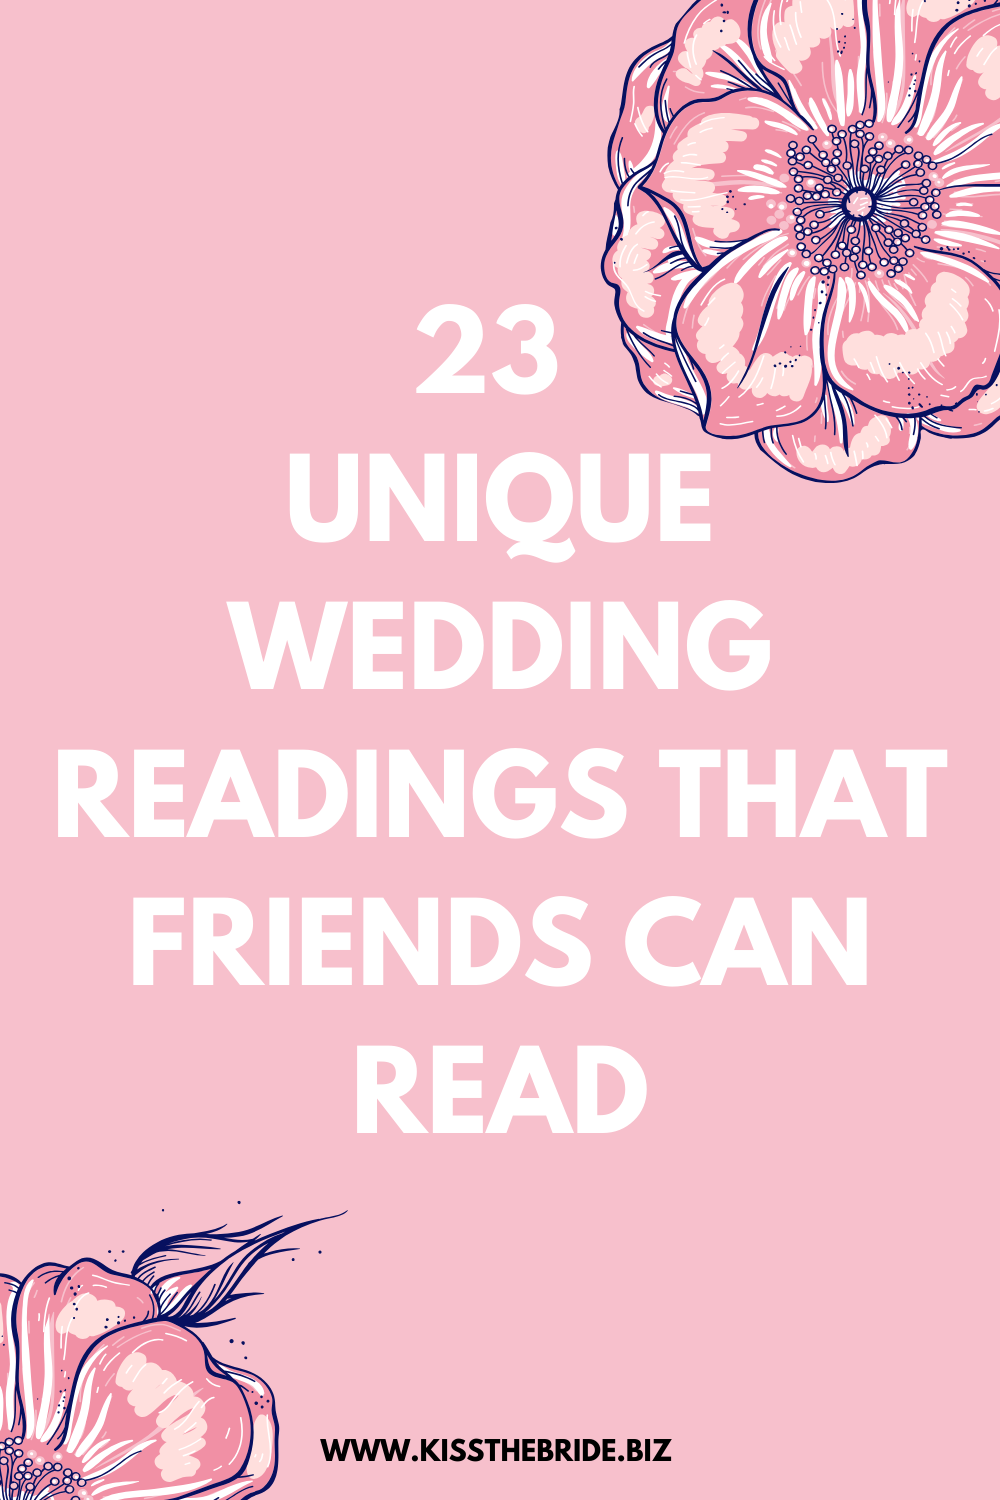 Wedding Reading ideas